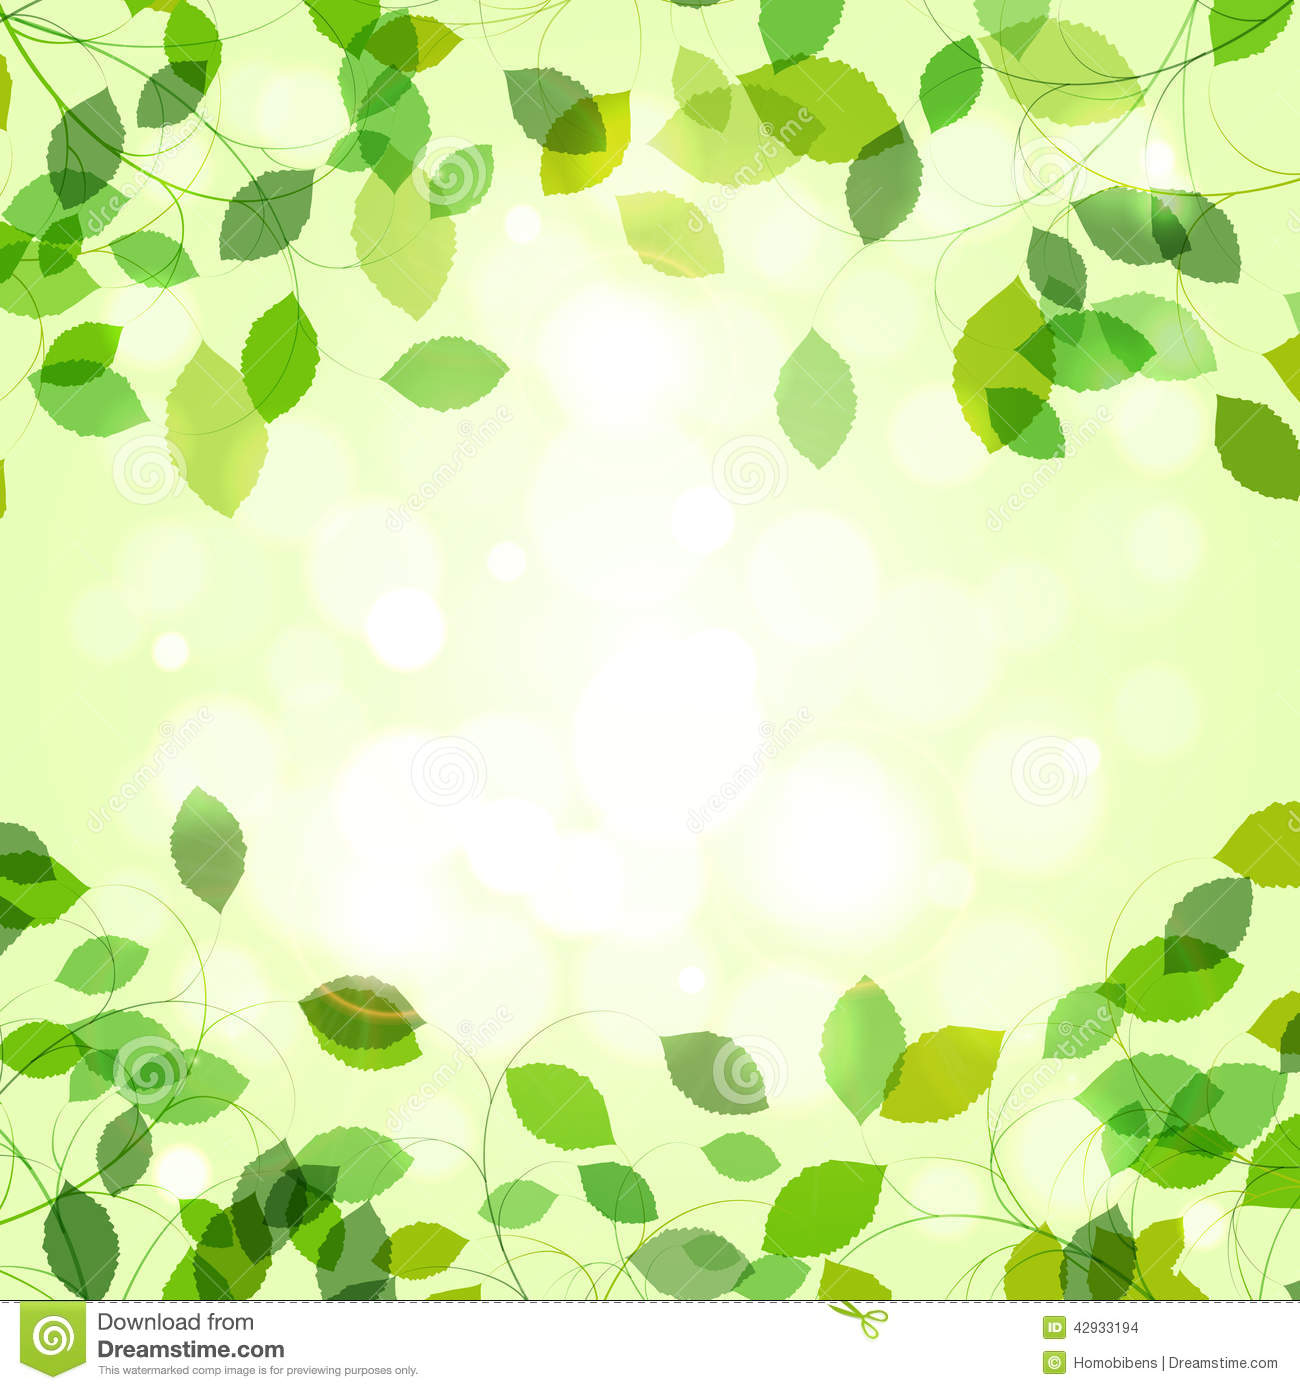 Summer branches with fresh green leaves